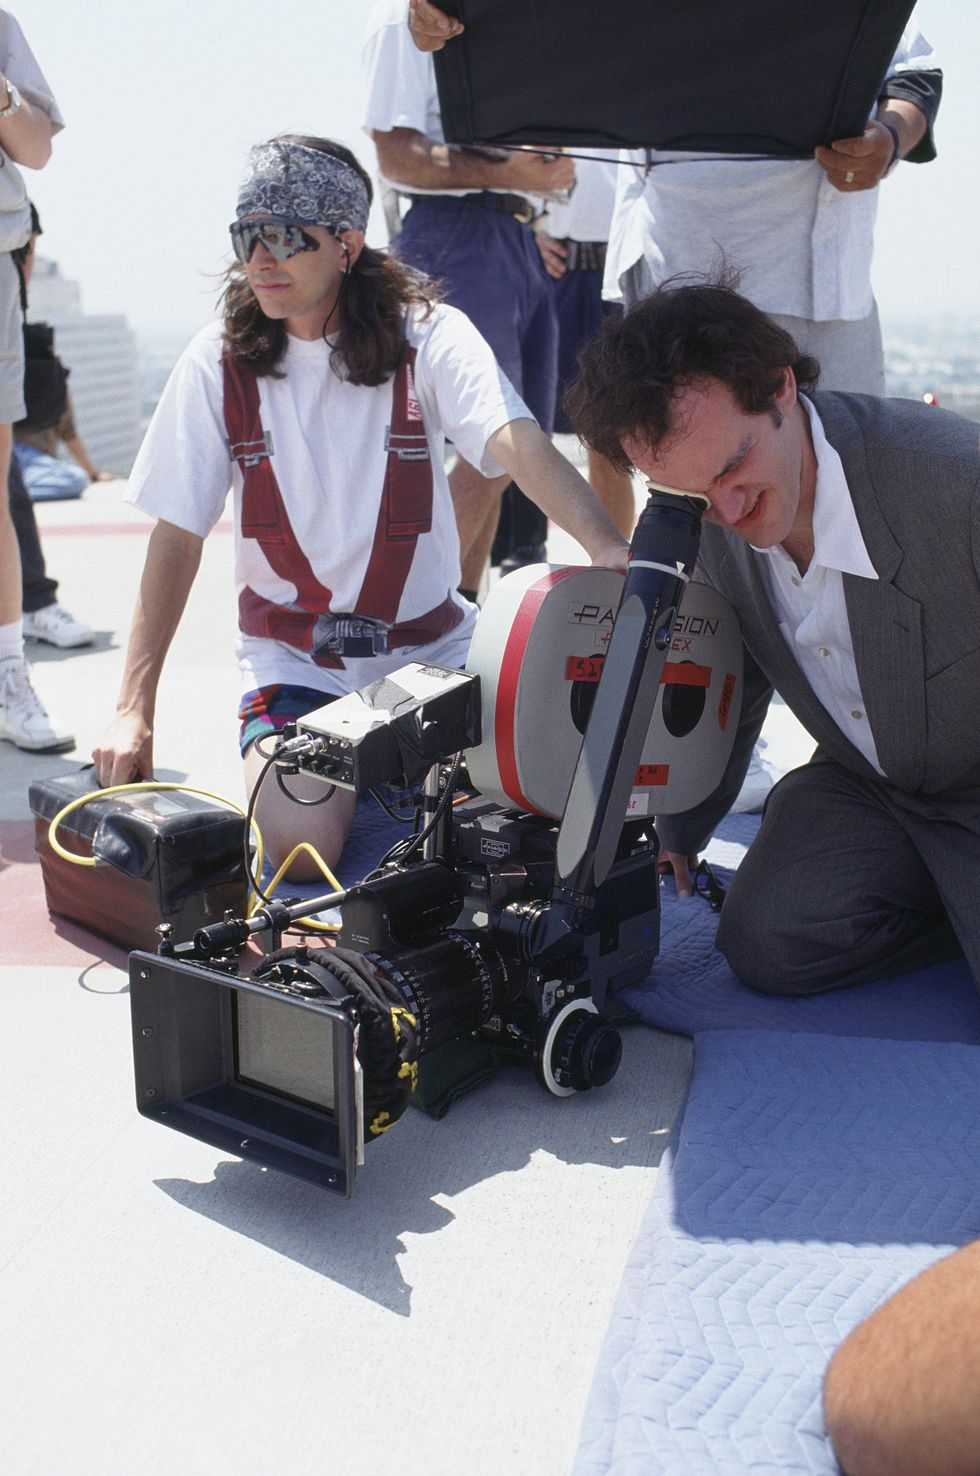 ER (1995) Tarantino takes a look at a shot while filming ER. The director received $30,000 for the gig , and the episode aired on May 11, 1995.